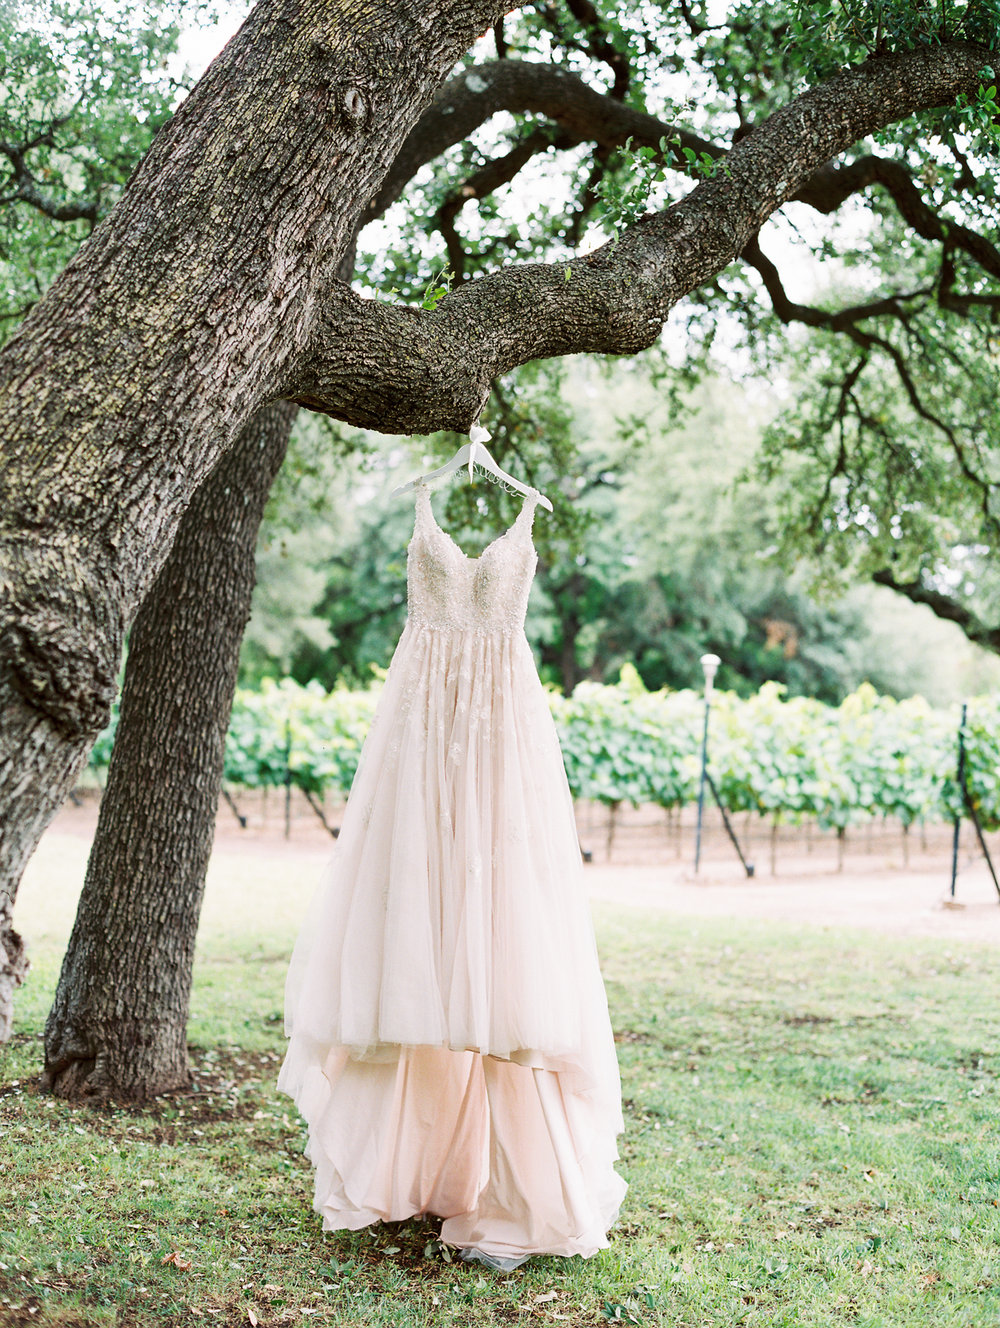 Elegant Spring Vineyard Wedding | Film Wedding Photographer | Austin Wedding Photographer | Stunning Spring Wedding Gown by Stella York | Britni Dean Photography // britnidean.com